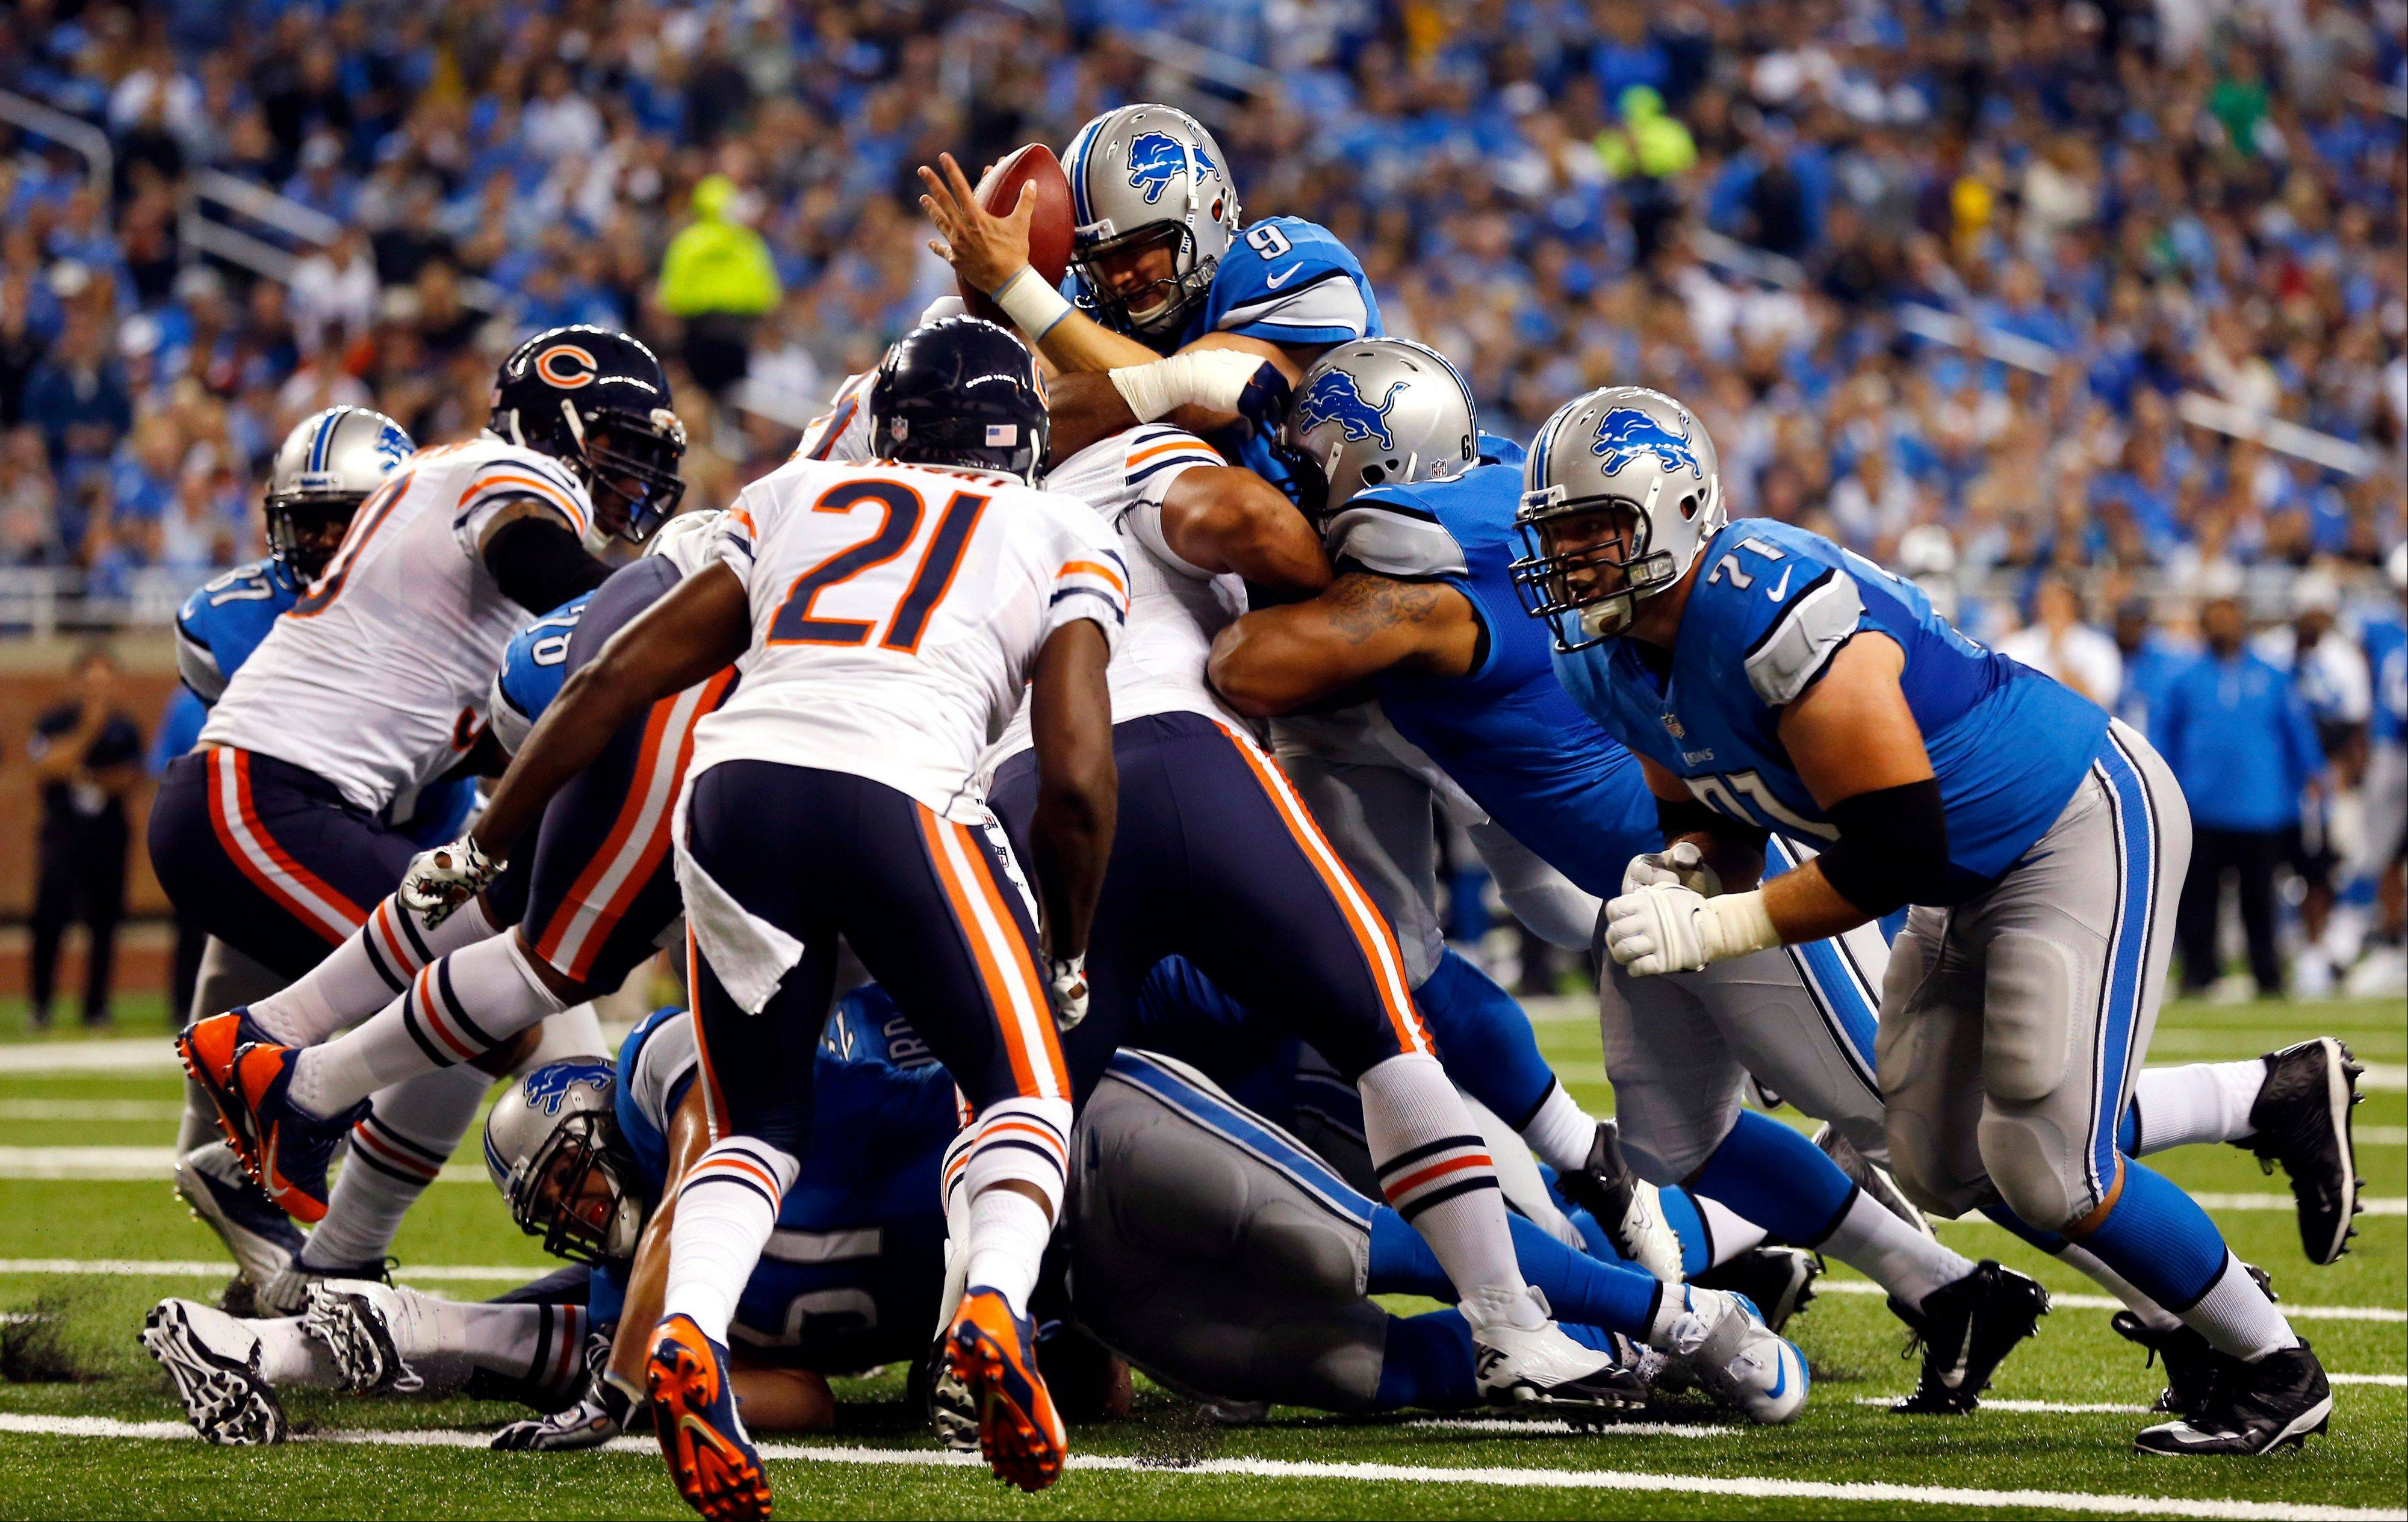 Detroit Lions quarterback Matthew Stafford (9) goes over the center for a touchdown but loses control of the ball during the second quarter.